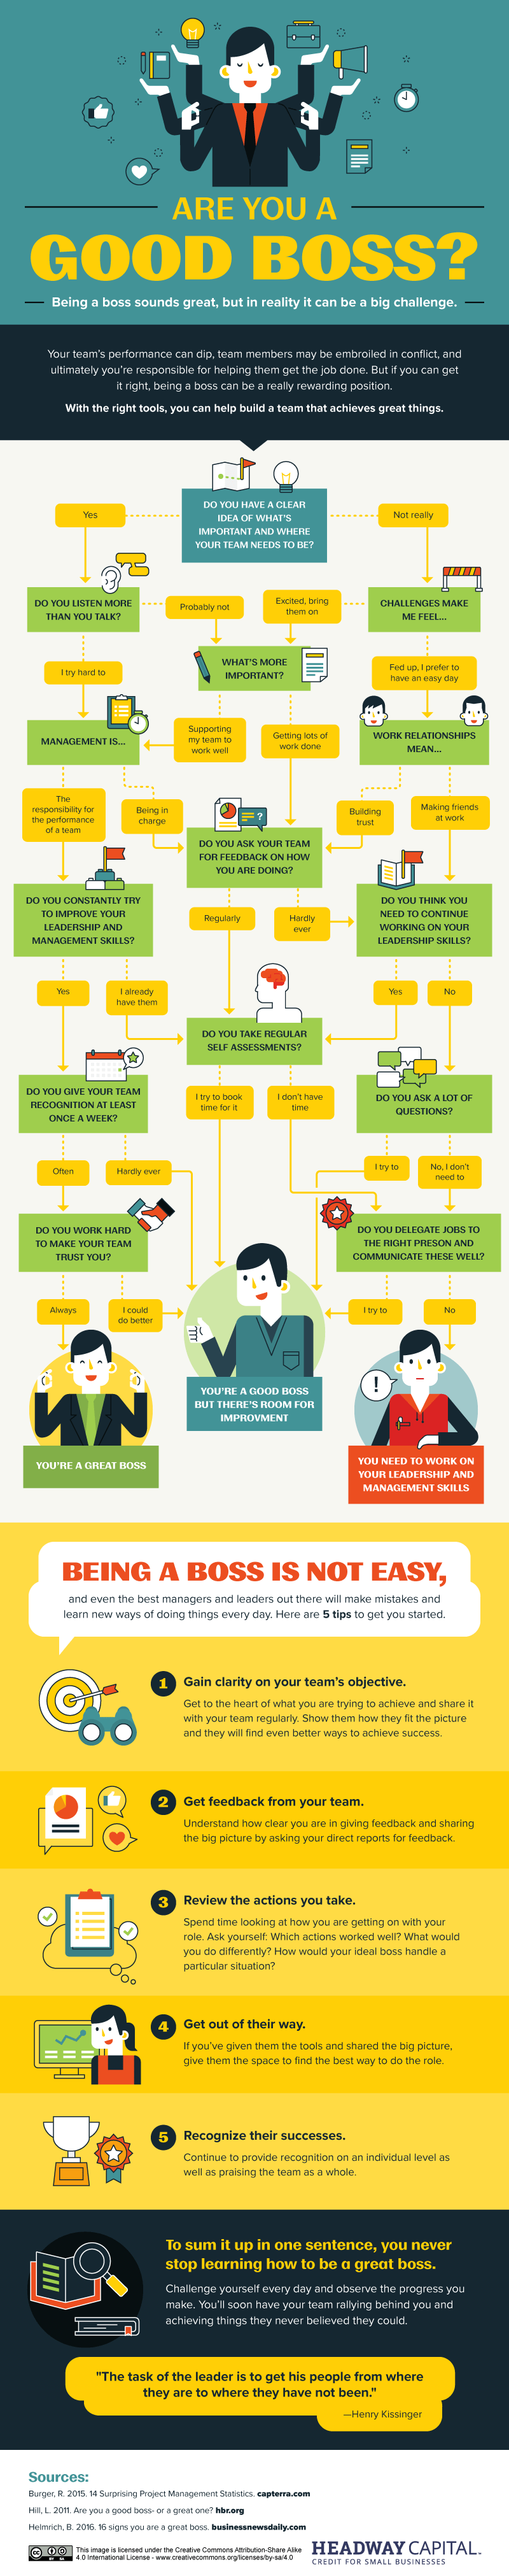 Photo of Are You a Good Boss? [INFOGRAPHIC]